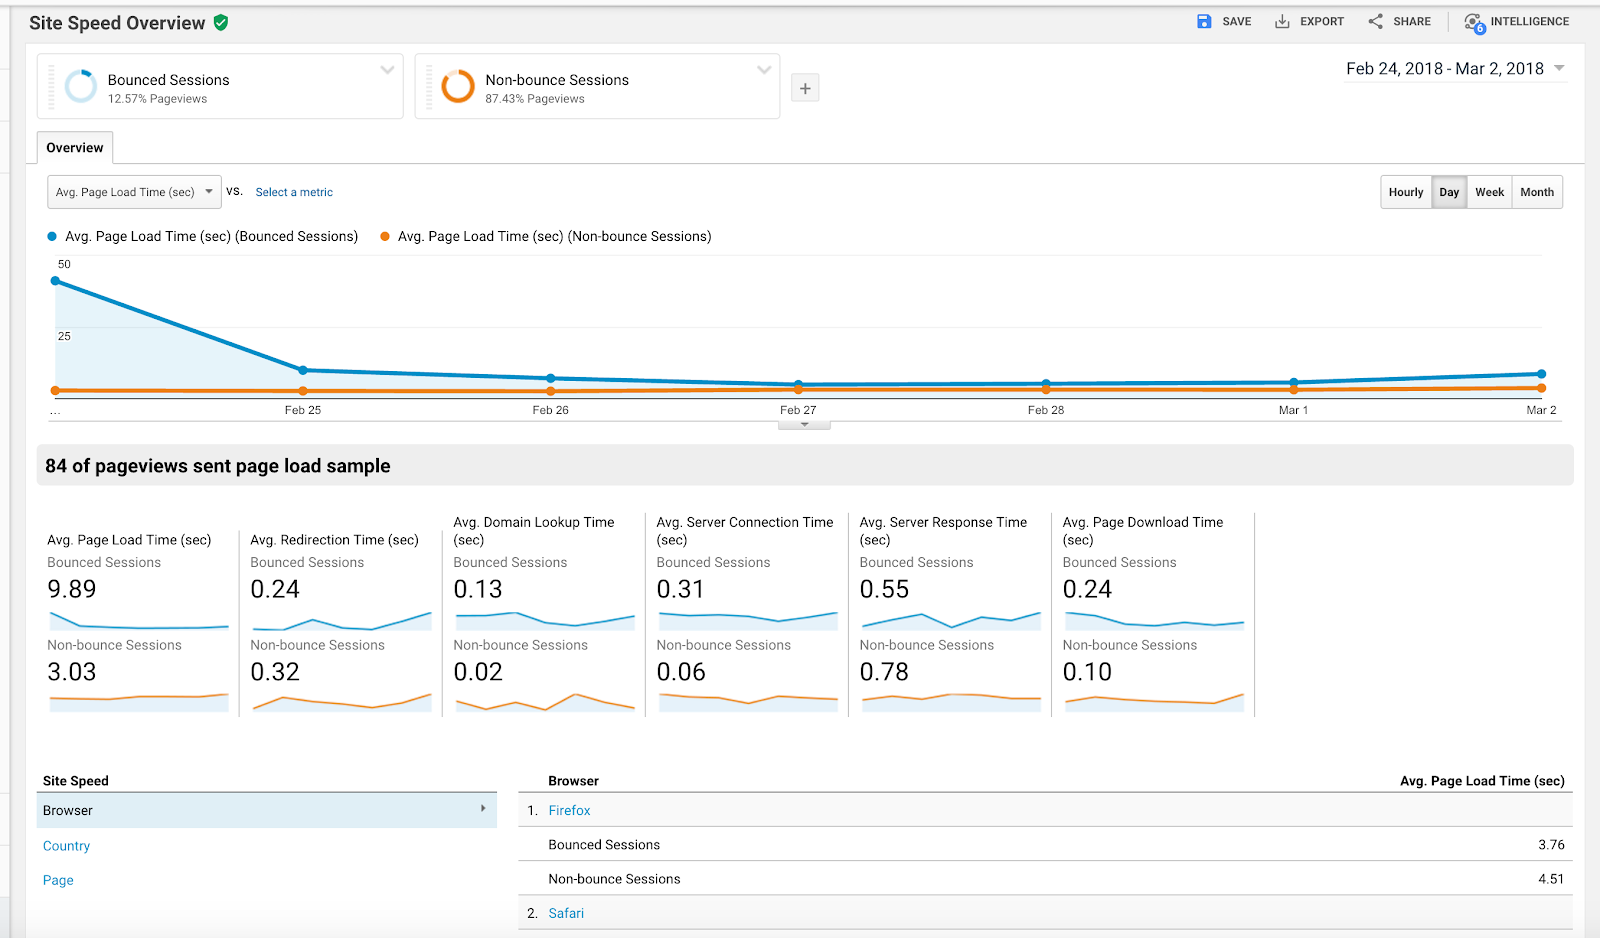 Comparing site speed metrics on bounce and non-bounce sessions